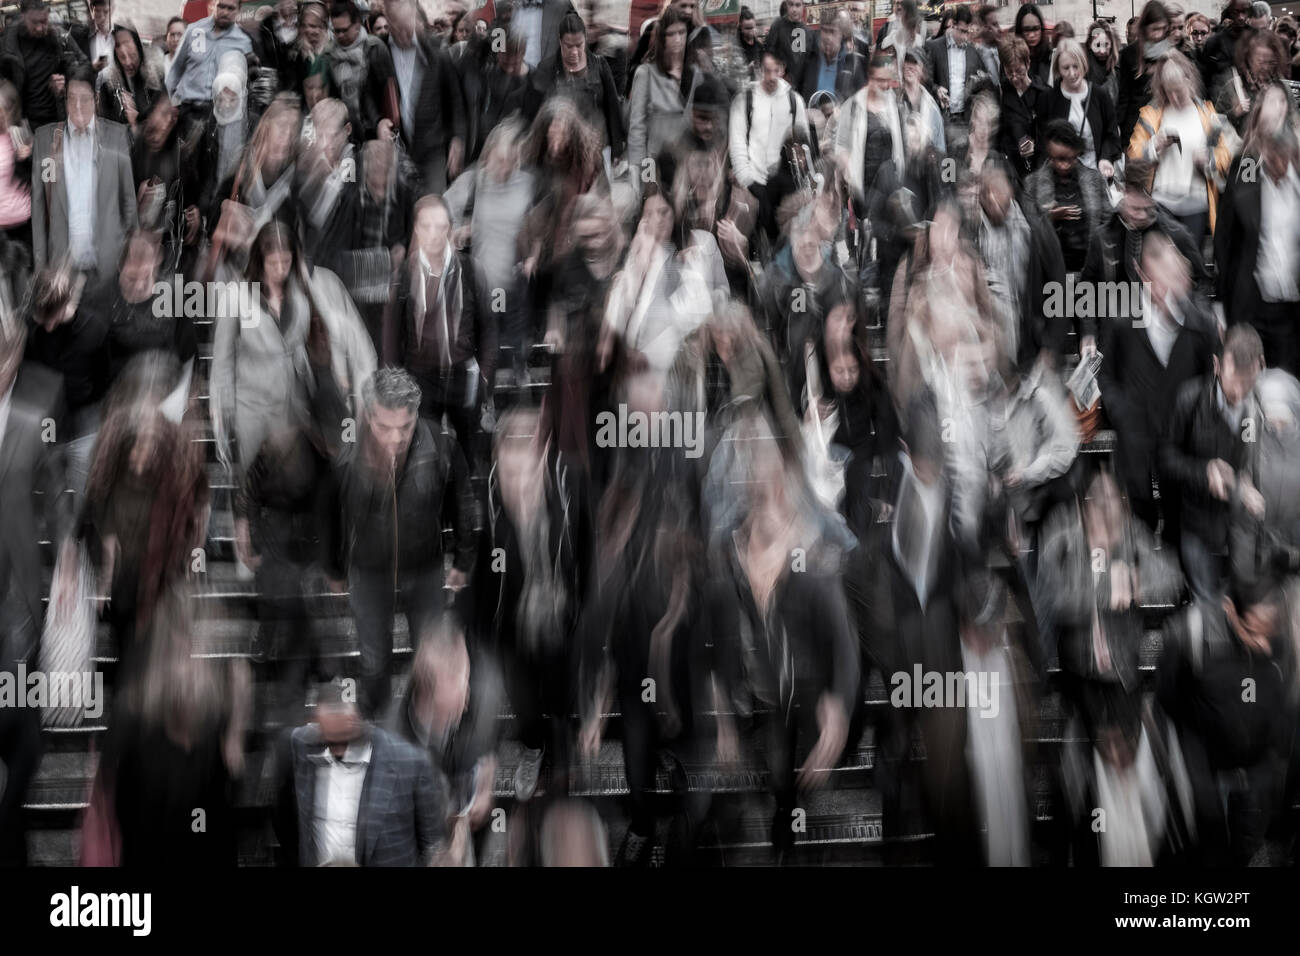 Crowd of people, London, UK - Stock Image